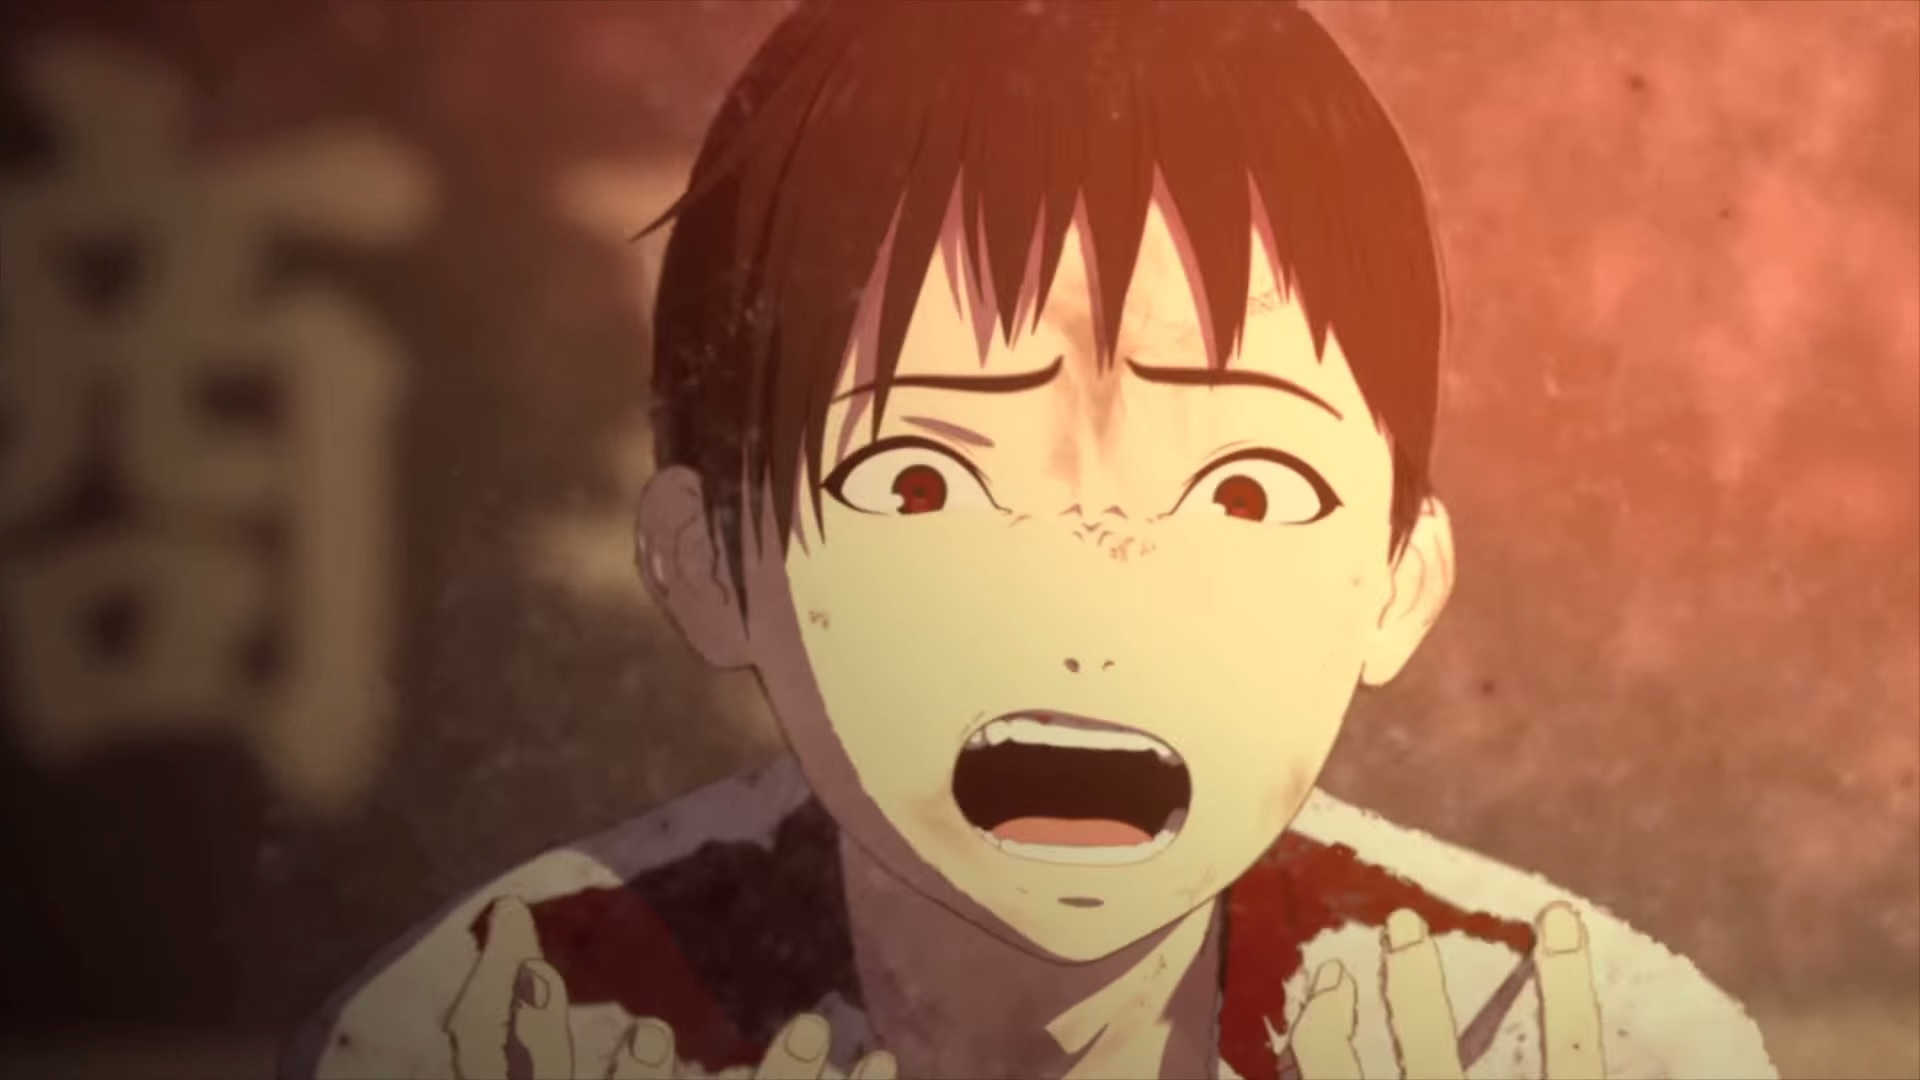 AJin Animation